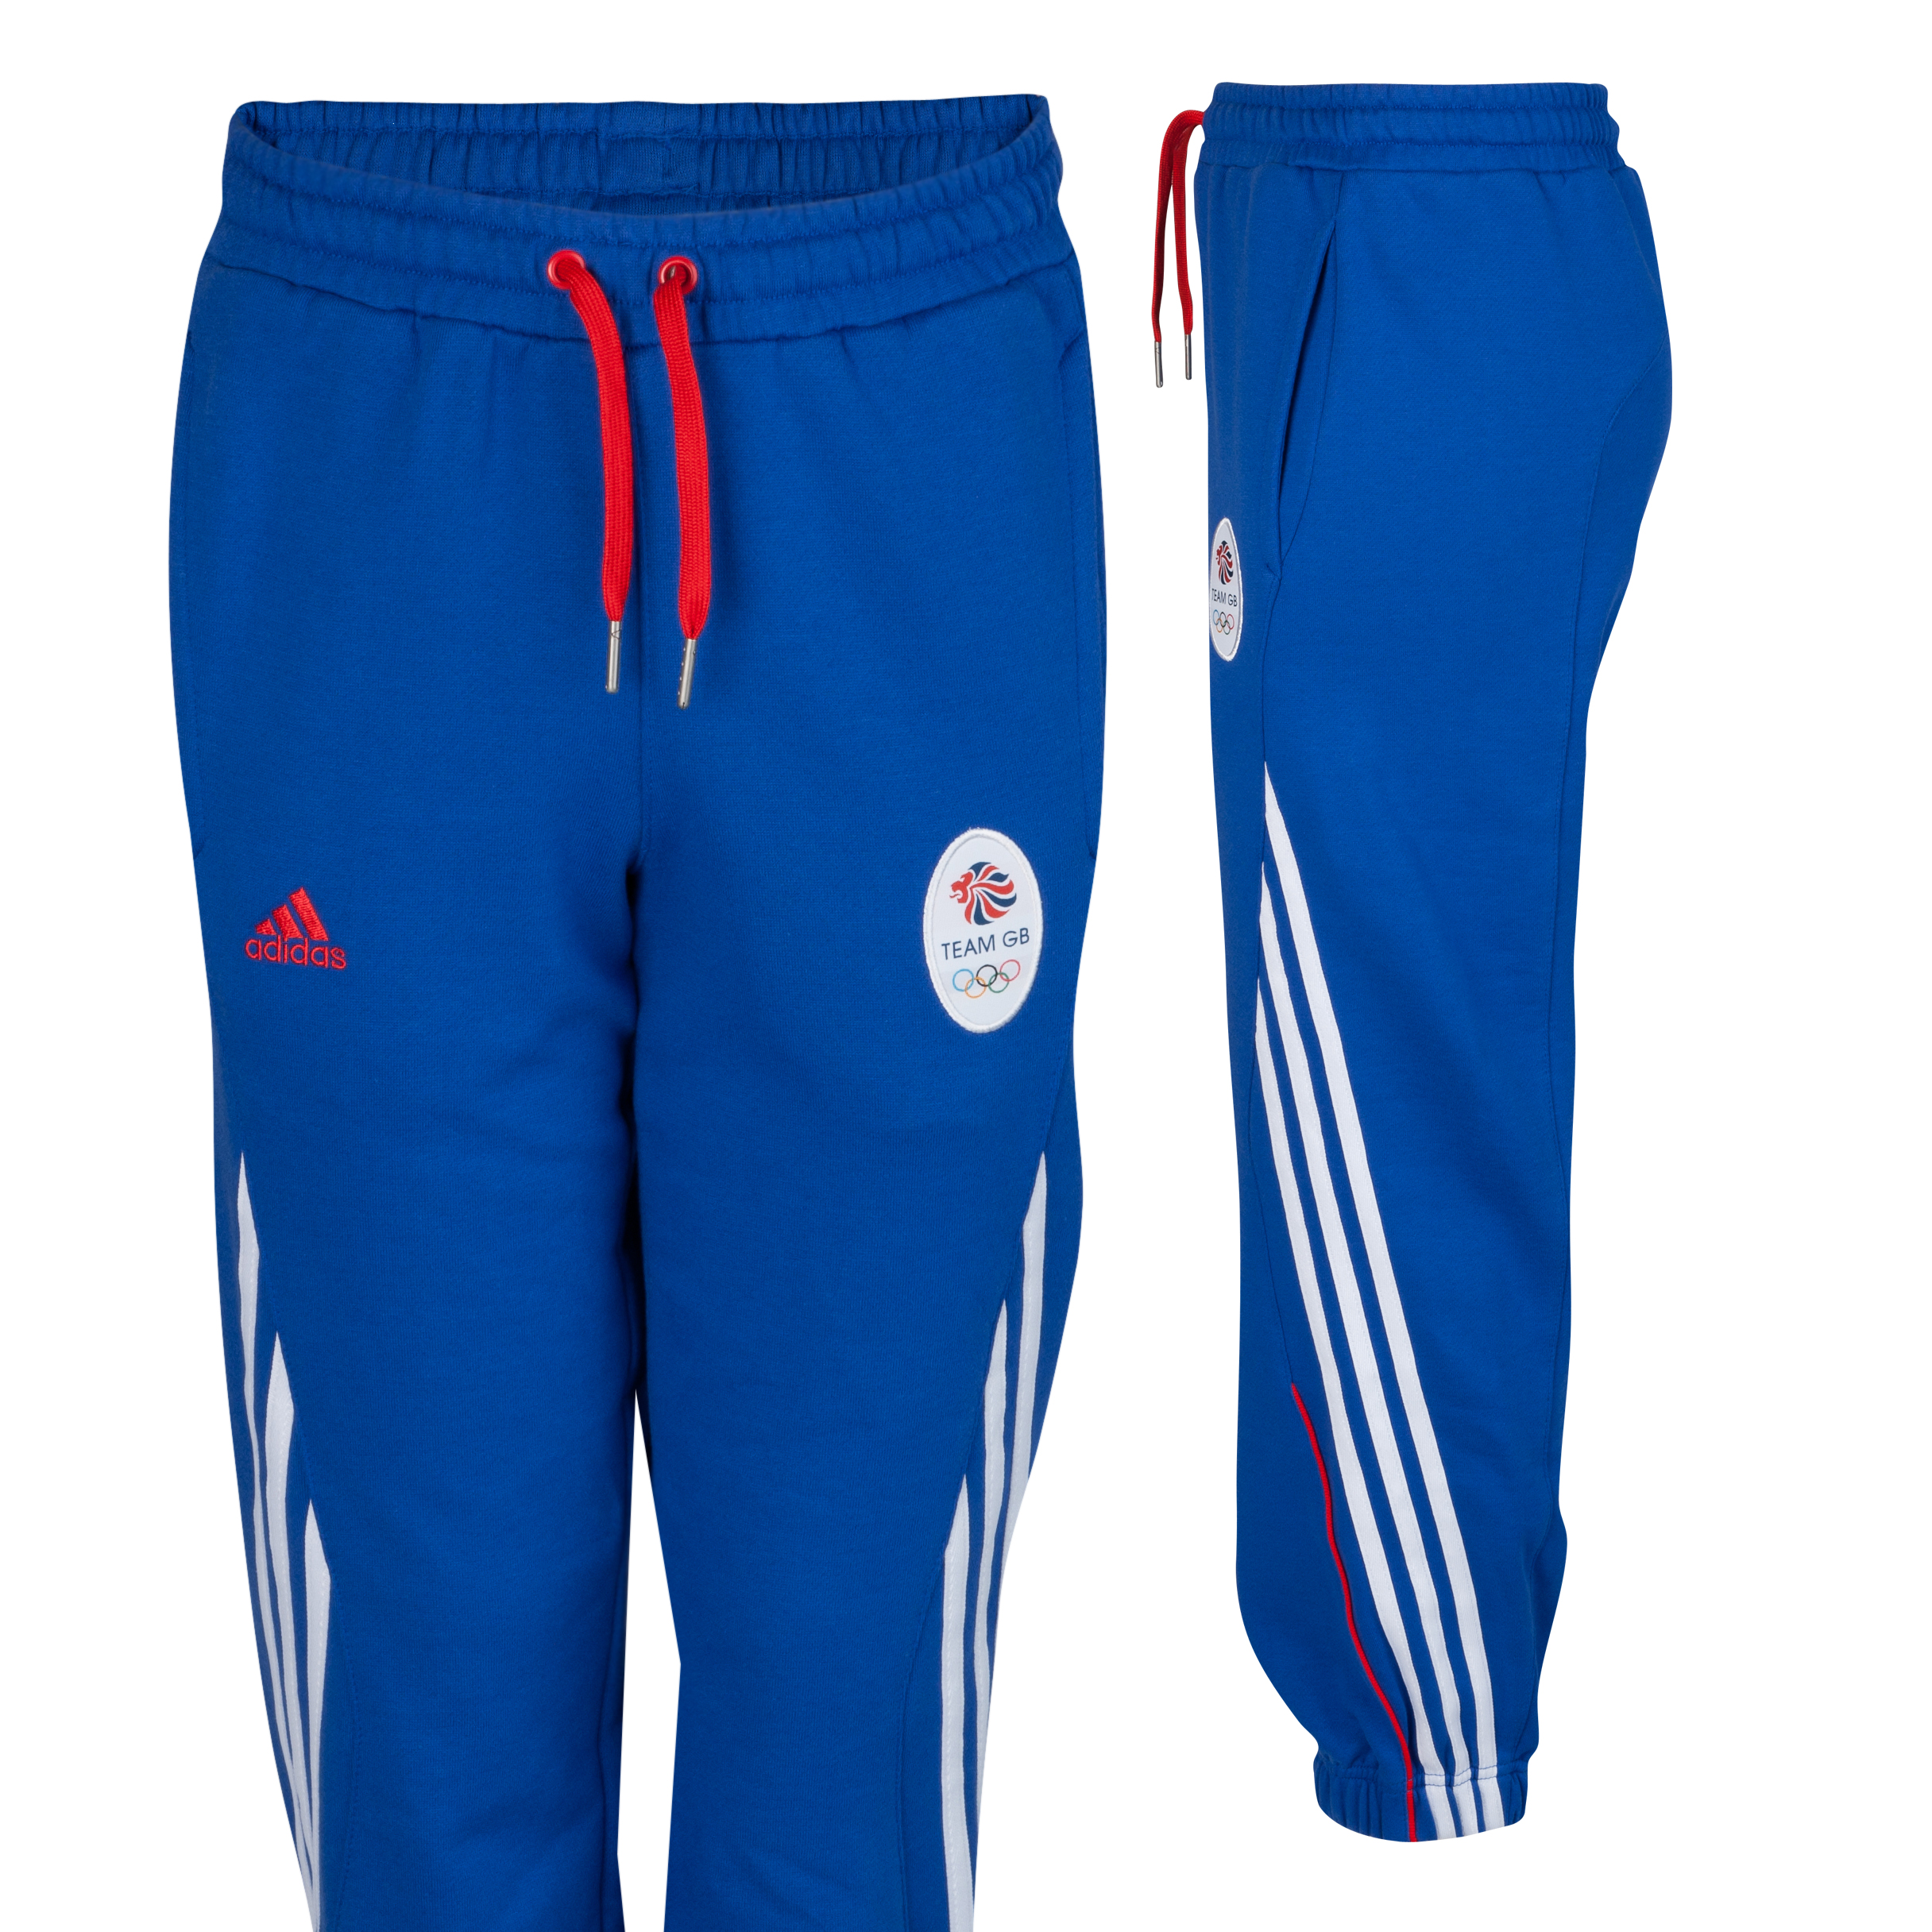 adidas Team GB Knit Pant - Victory Blue S07/White/Vivid Red F04 - Kids